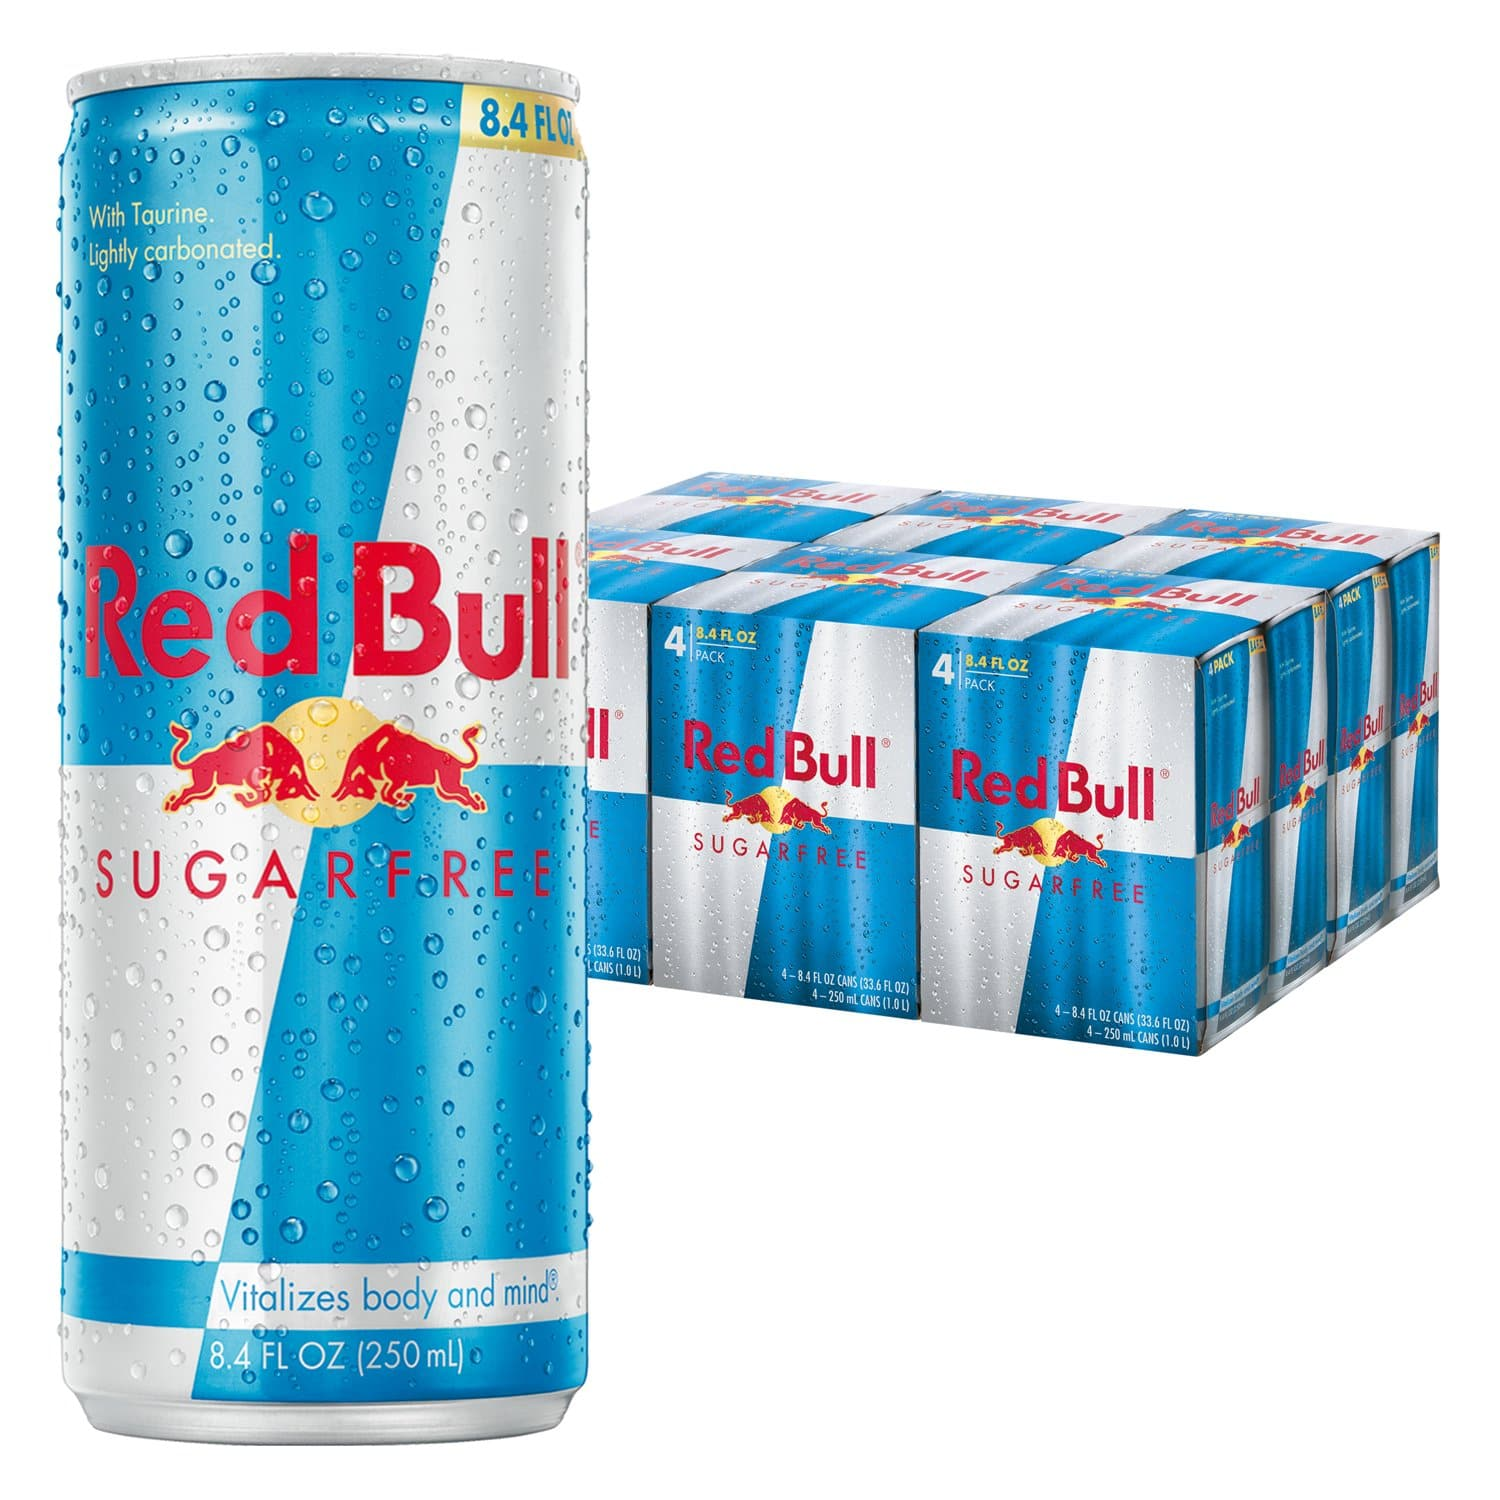 24-Pack 8.4oz. Red Bull Sugar Free Energy Drink $24.13(as low as $20.99) w/ S&S + Free S&H